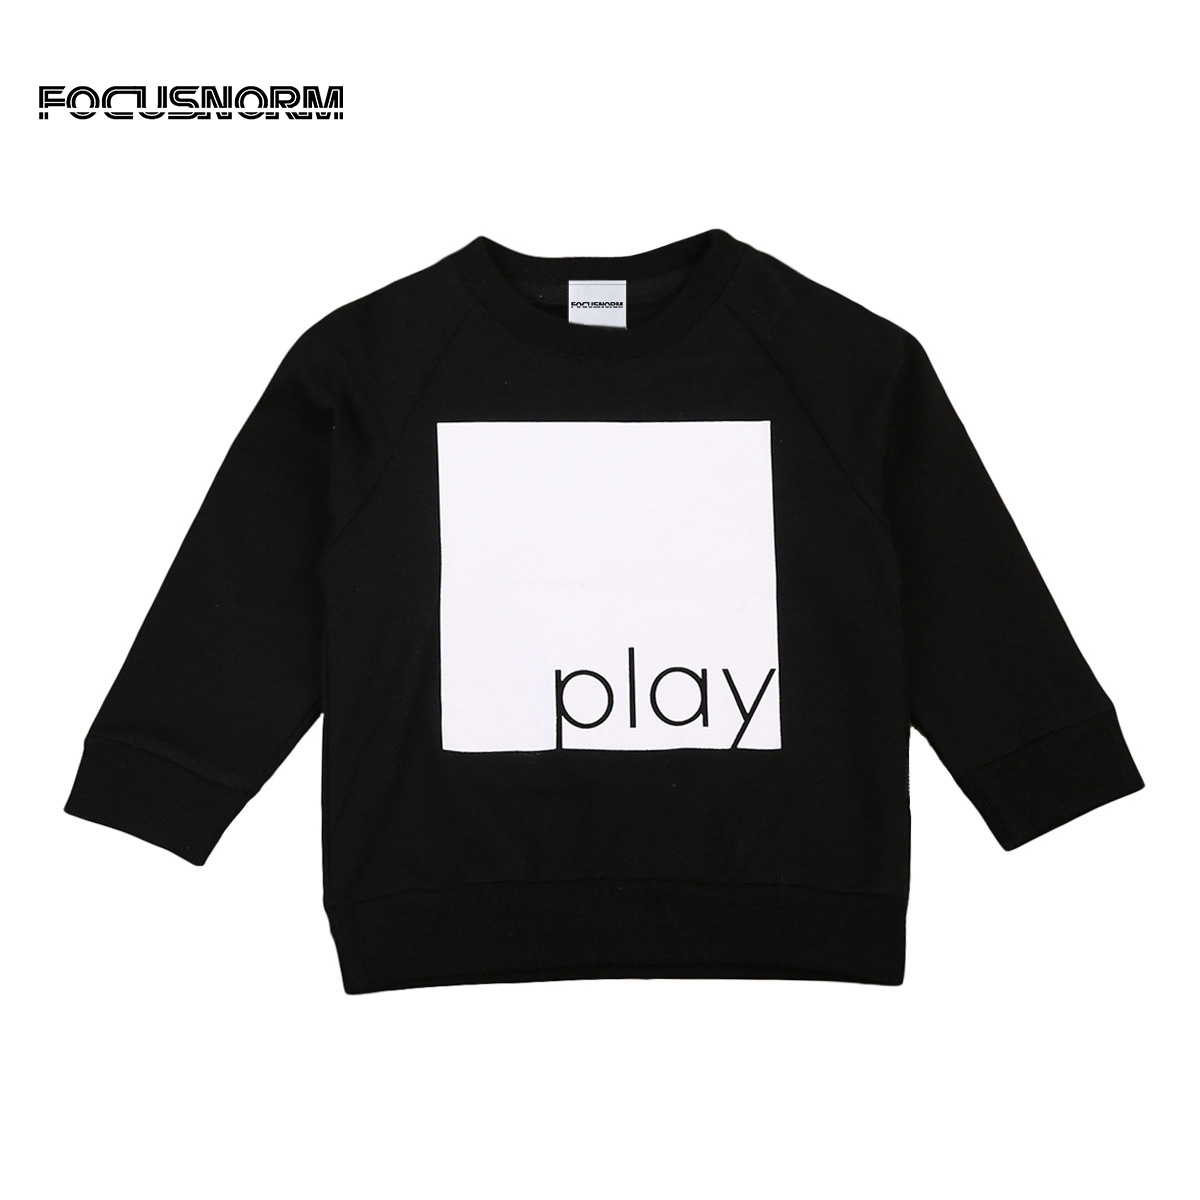 4 Styles Toddler Simple Sweatshirt Hoodies Tops Kids Boy Jumpers Long Sleeve Crew Neck Autumn Winter Warm Pullover